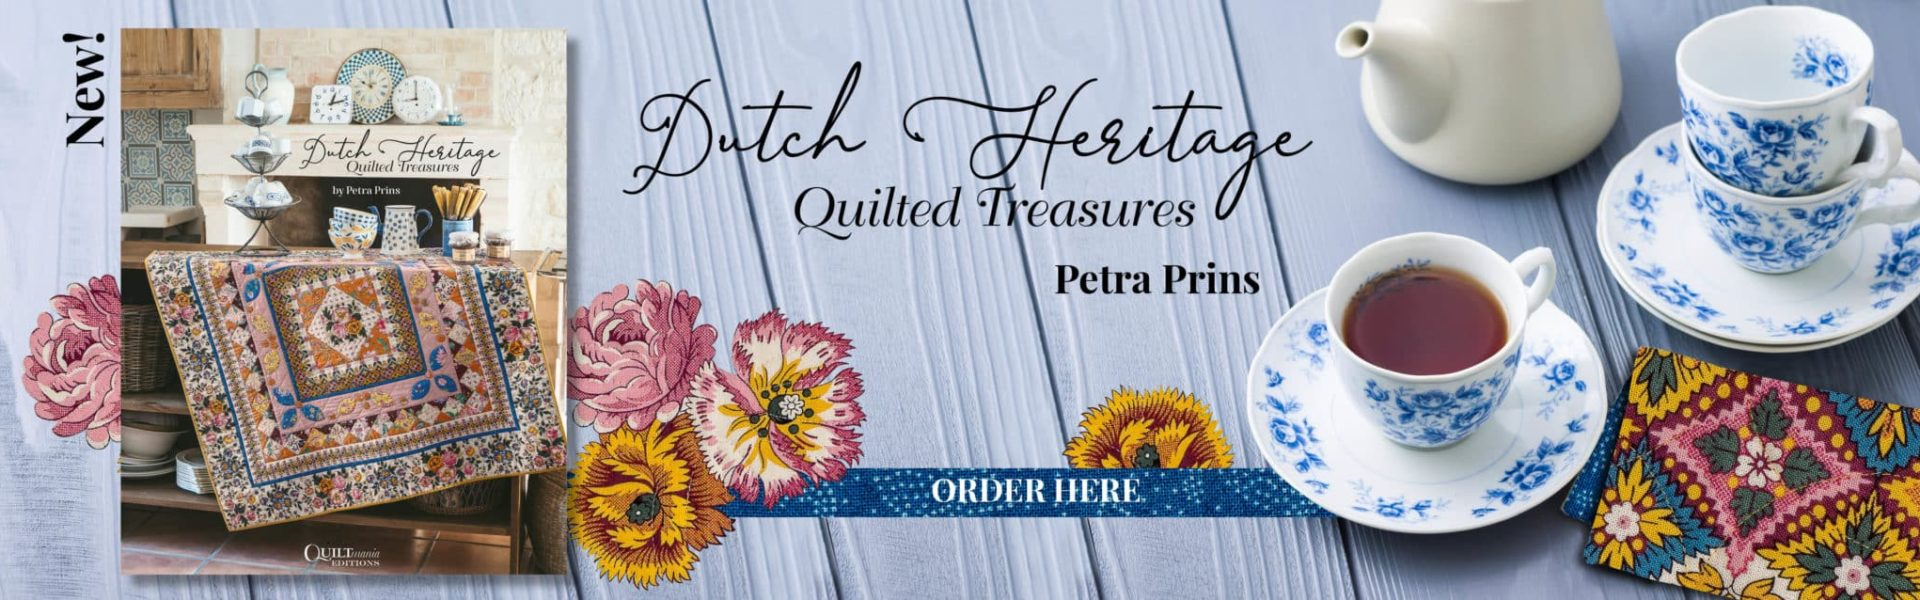 Banner book Dutch Heritage by Petra Prins Site GB